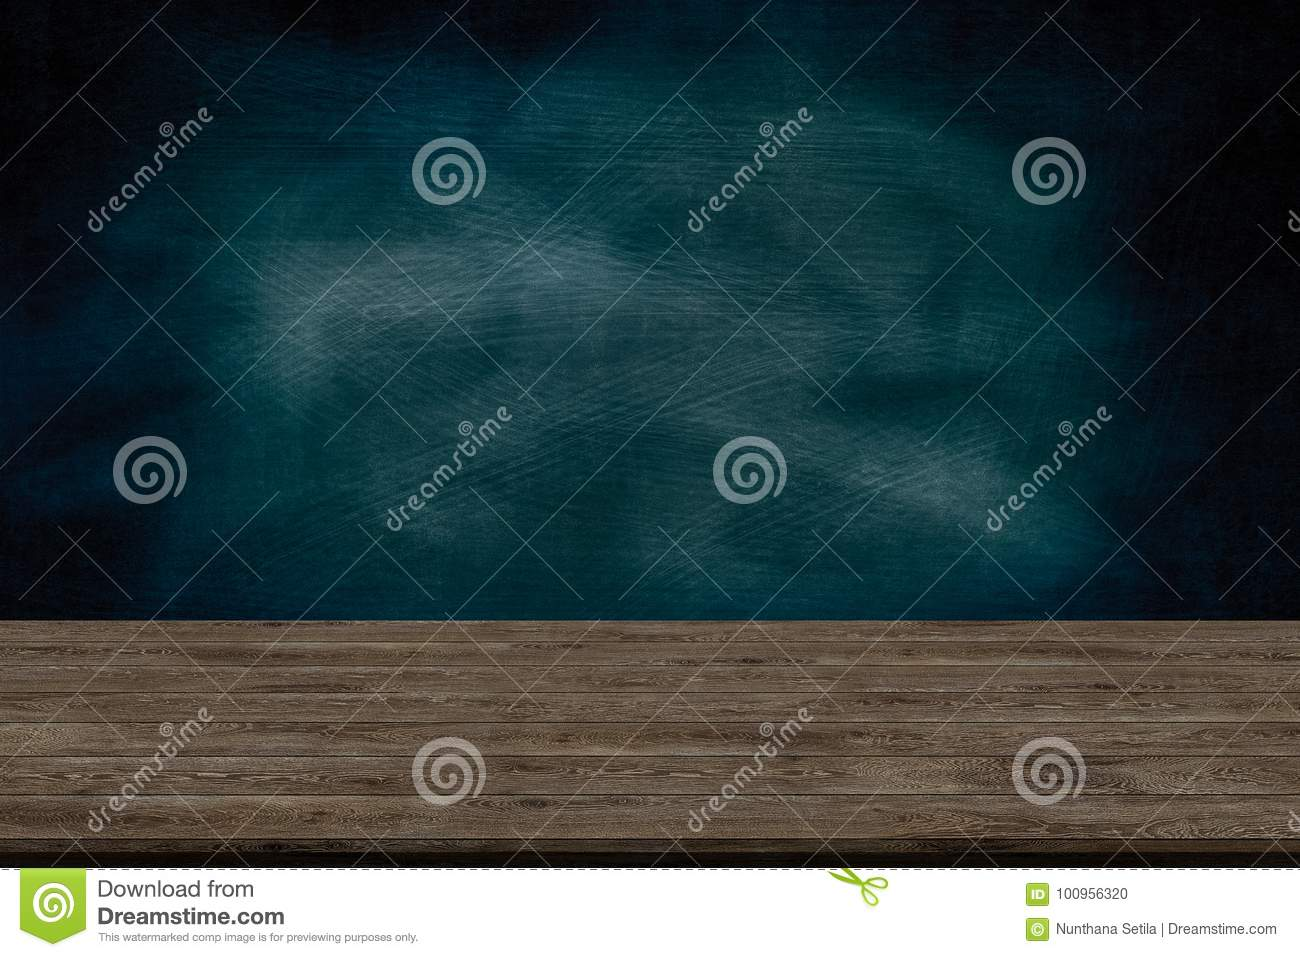 Abstract wooden table texture and chalk rubbed out on blackboard, for graphic add product, Education concept,